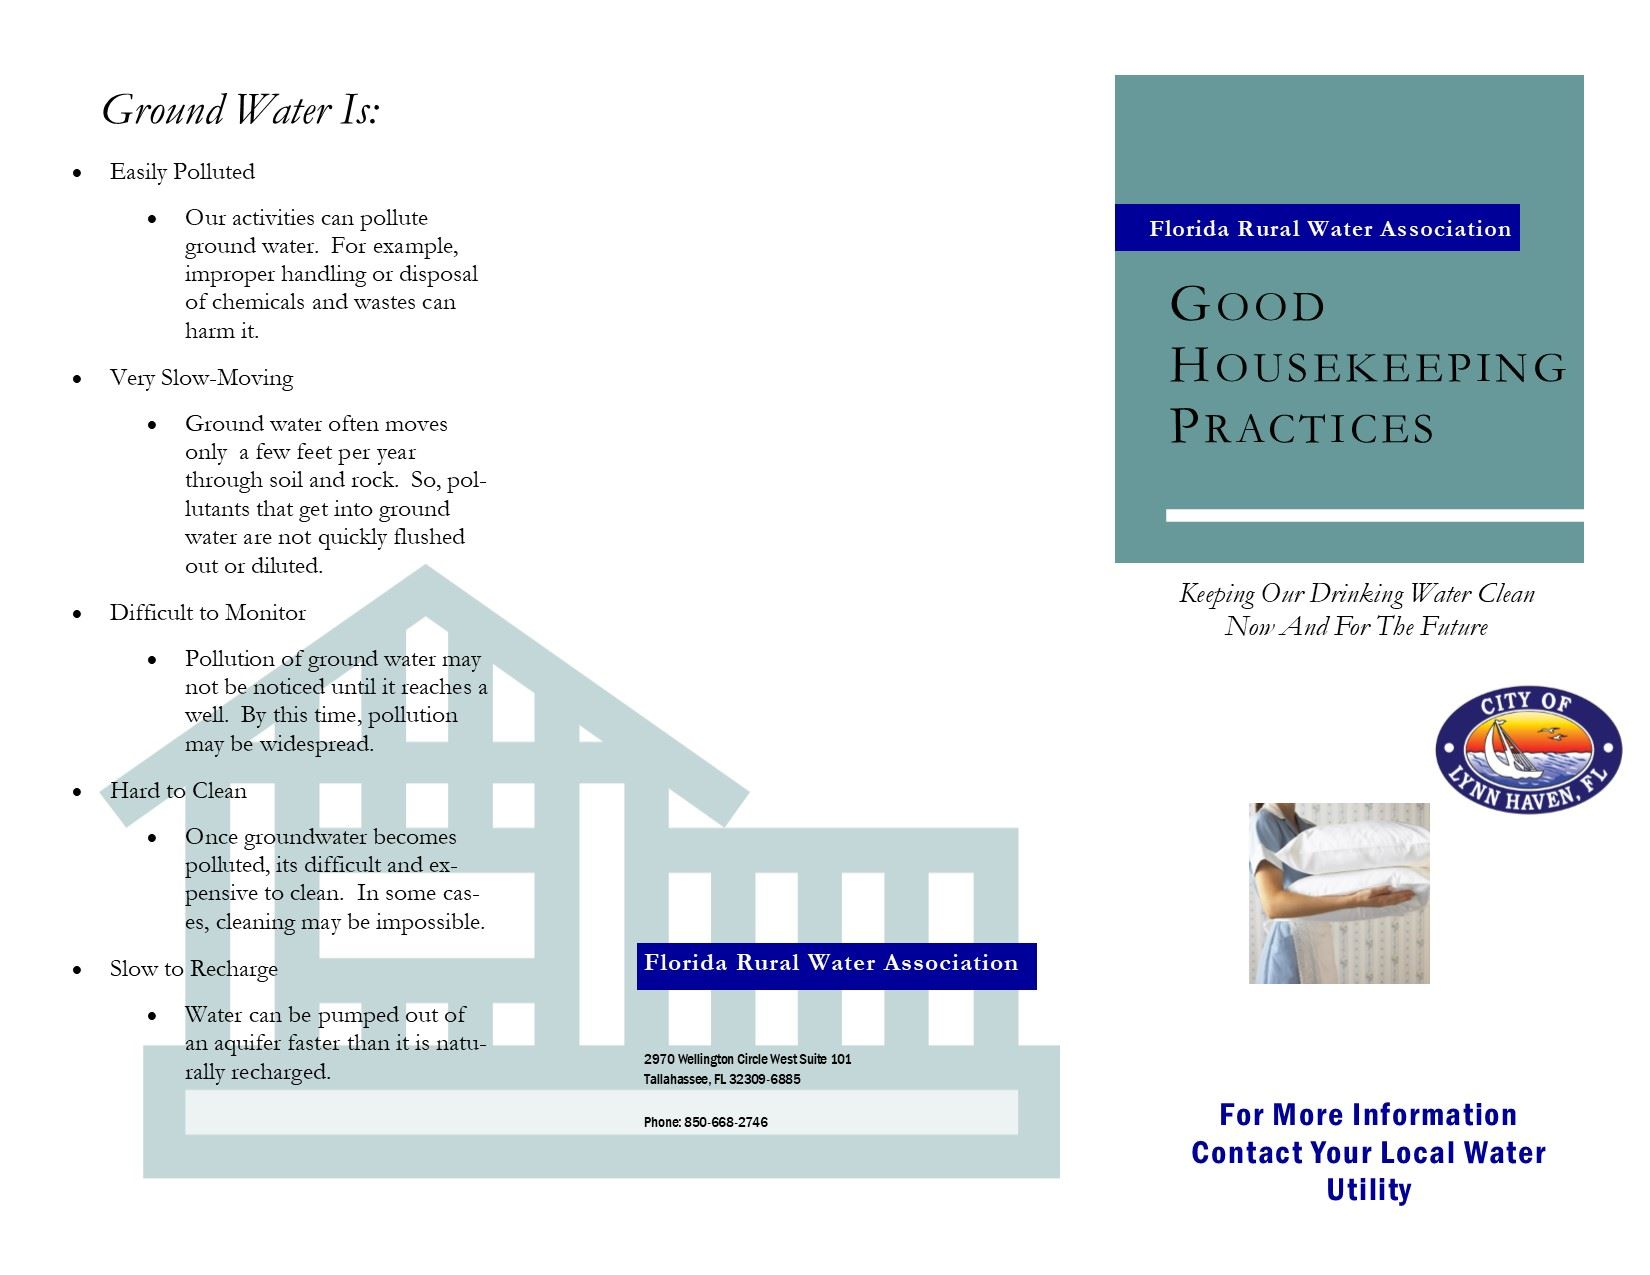 Good Housekeeping Practices Brochure Side 1